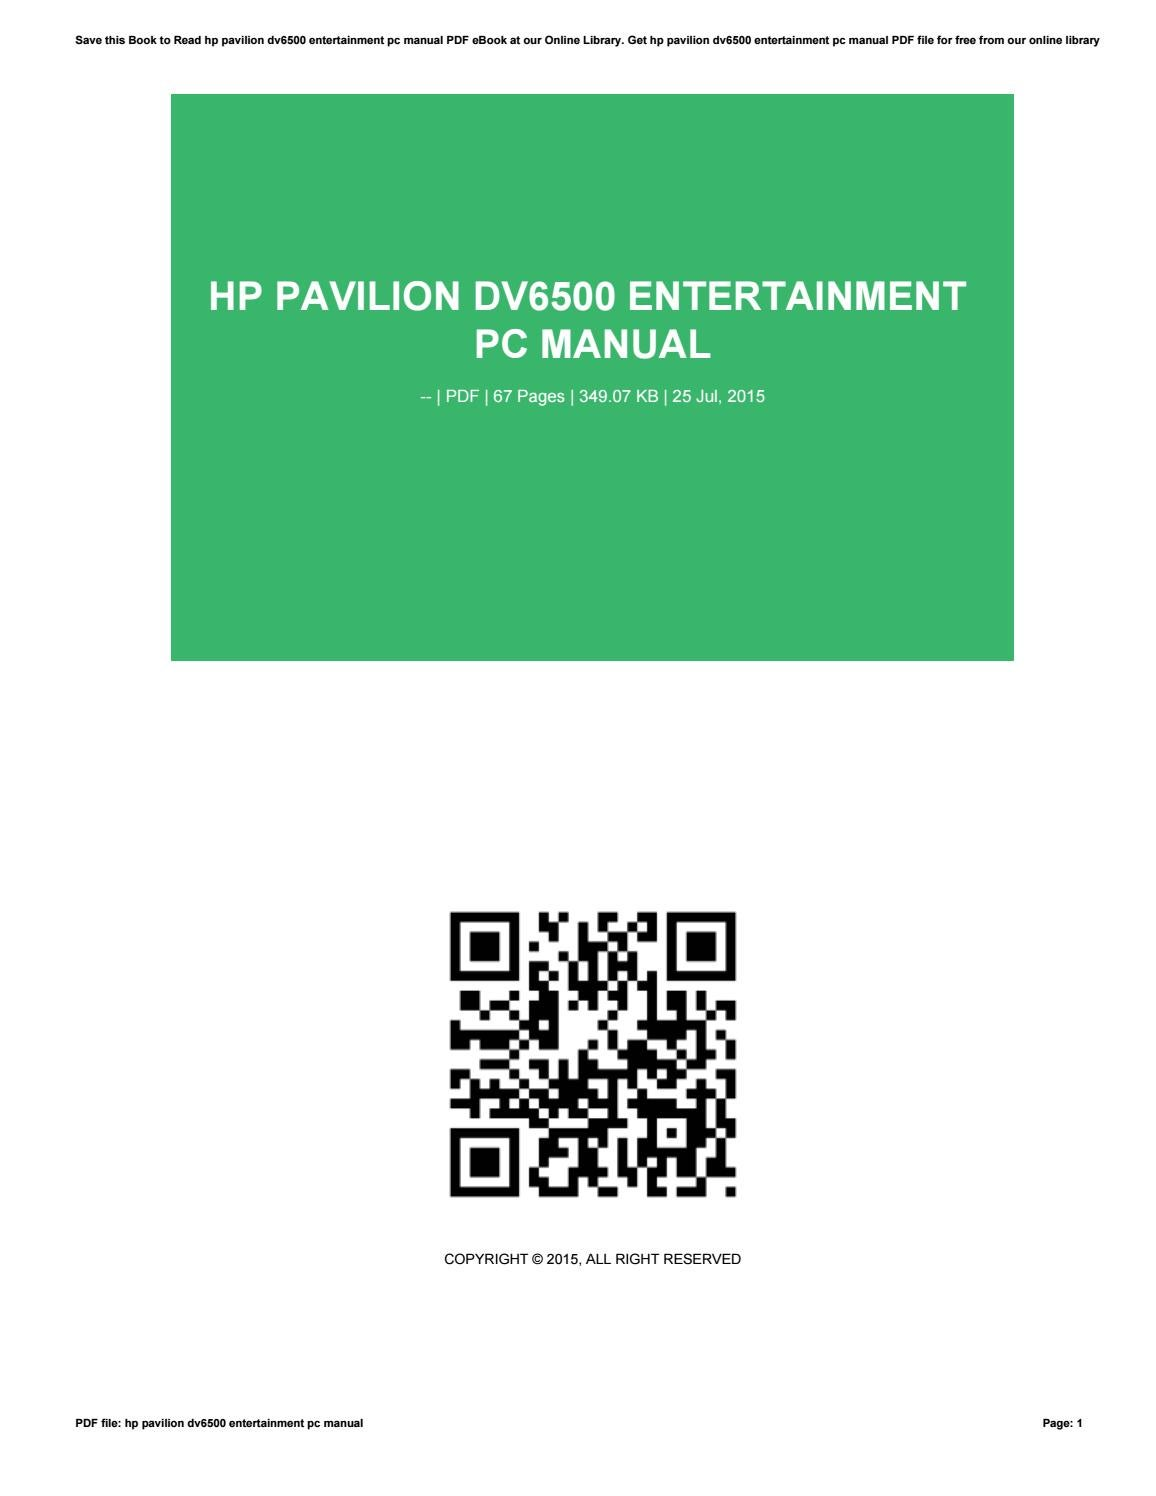 Hp pavilion dv6500 entertainment pc manual by hp pavilion dv6500 entertainment pc manual by jeffreymontgomery1295 issuu fandeluxe Gallery